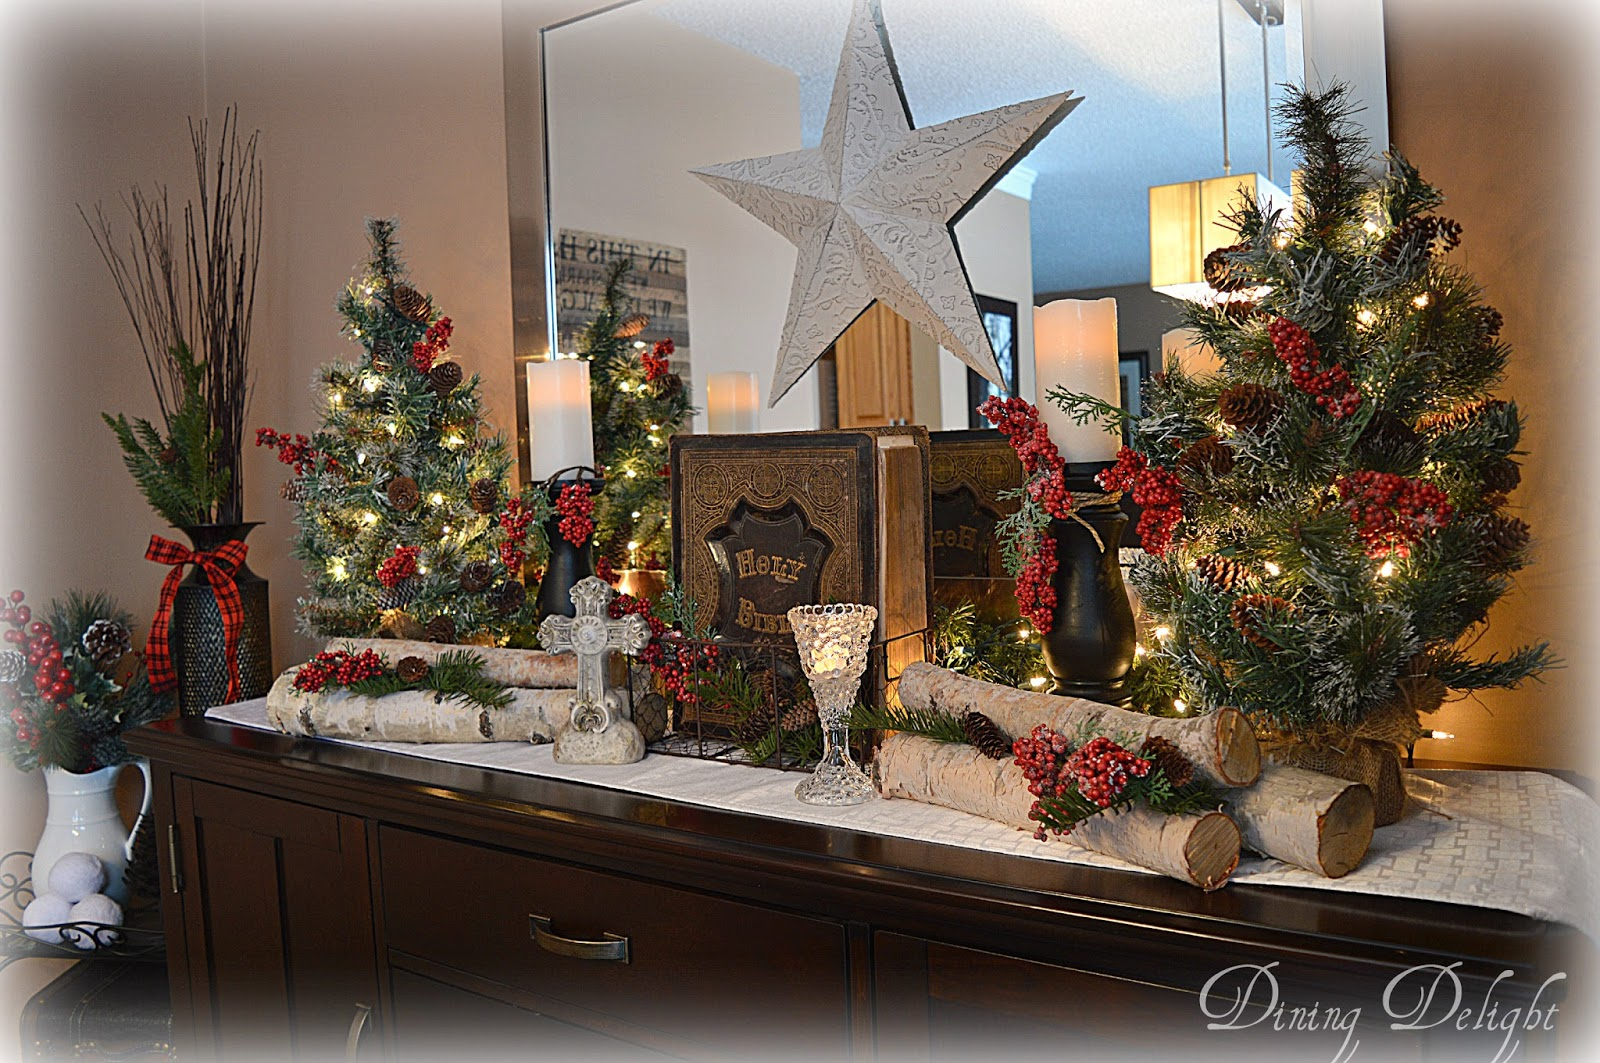 Dining Delight Rustic Christmas Sideboard